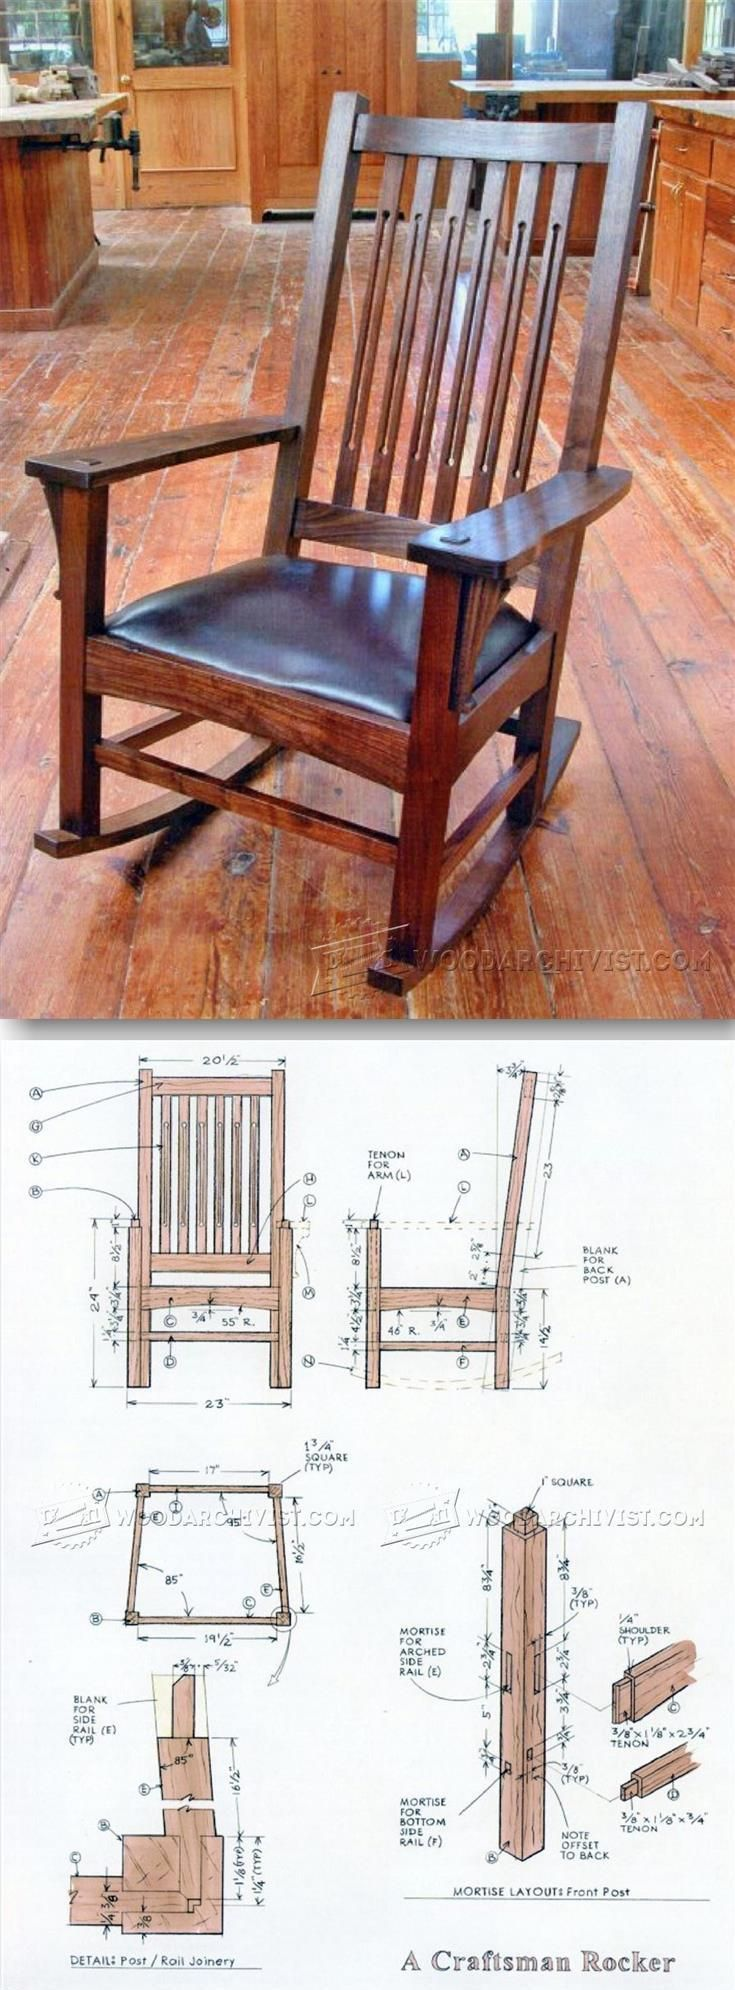 Mission style furniture plans - Craftsman Rocking Chair Plans Furniture Plans And Projects Http Woodarchivist